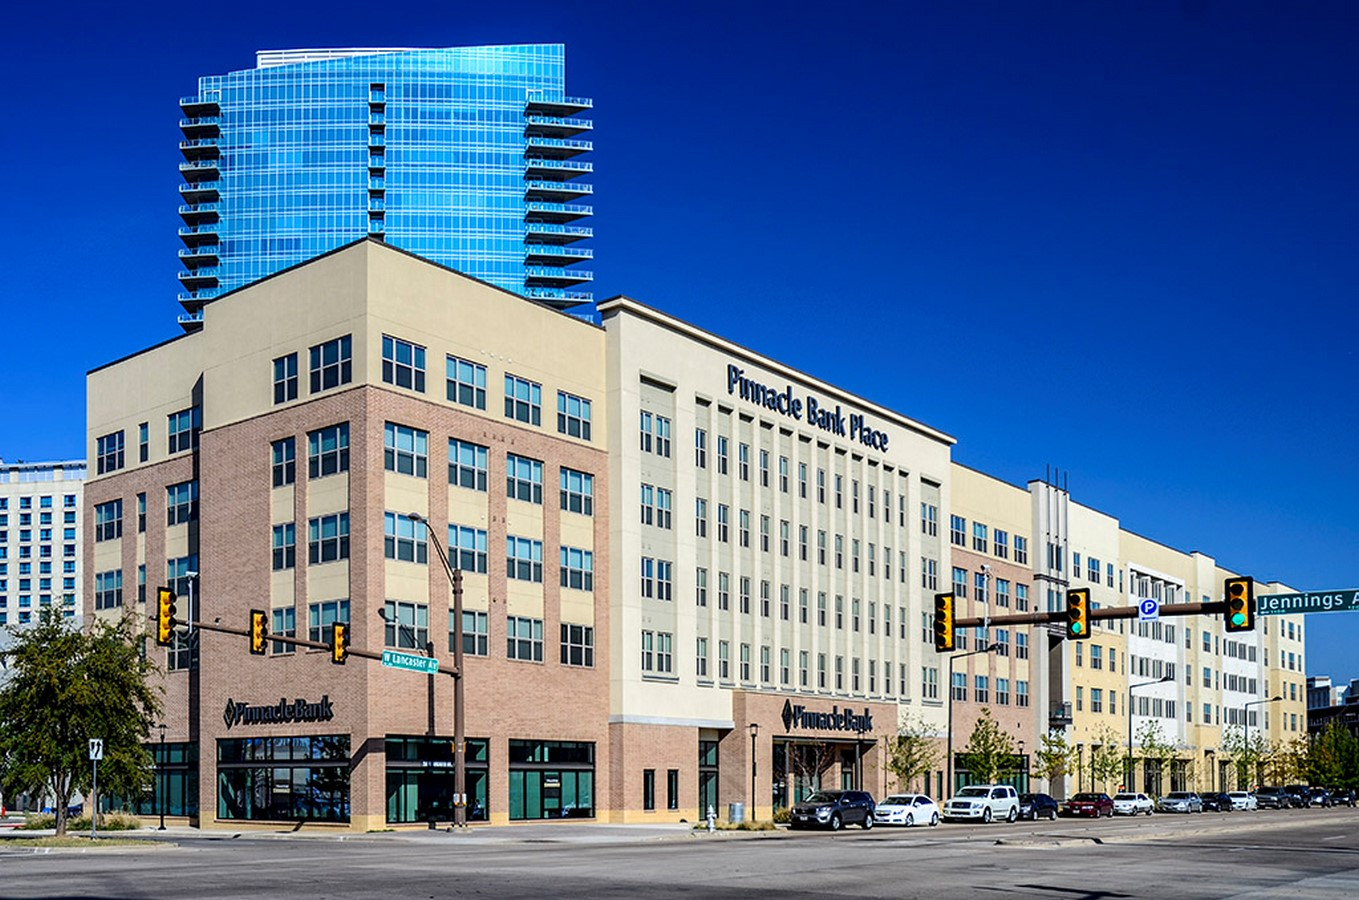 Architects in Fort Worth - Top 55 Architects in Fort Worth - Sheet2